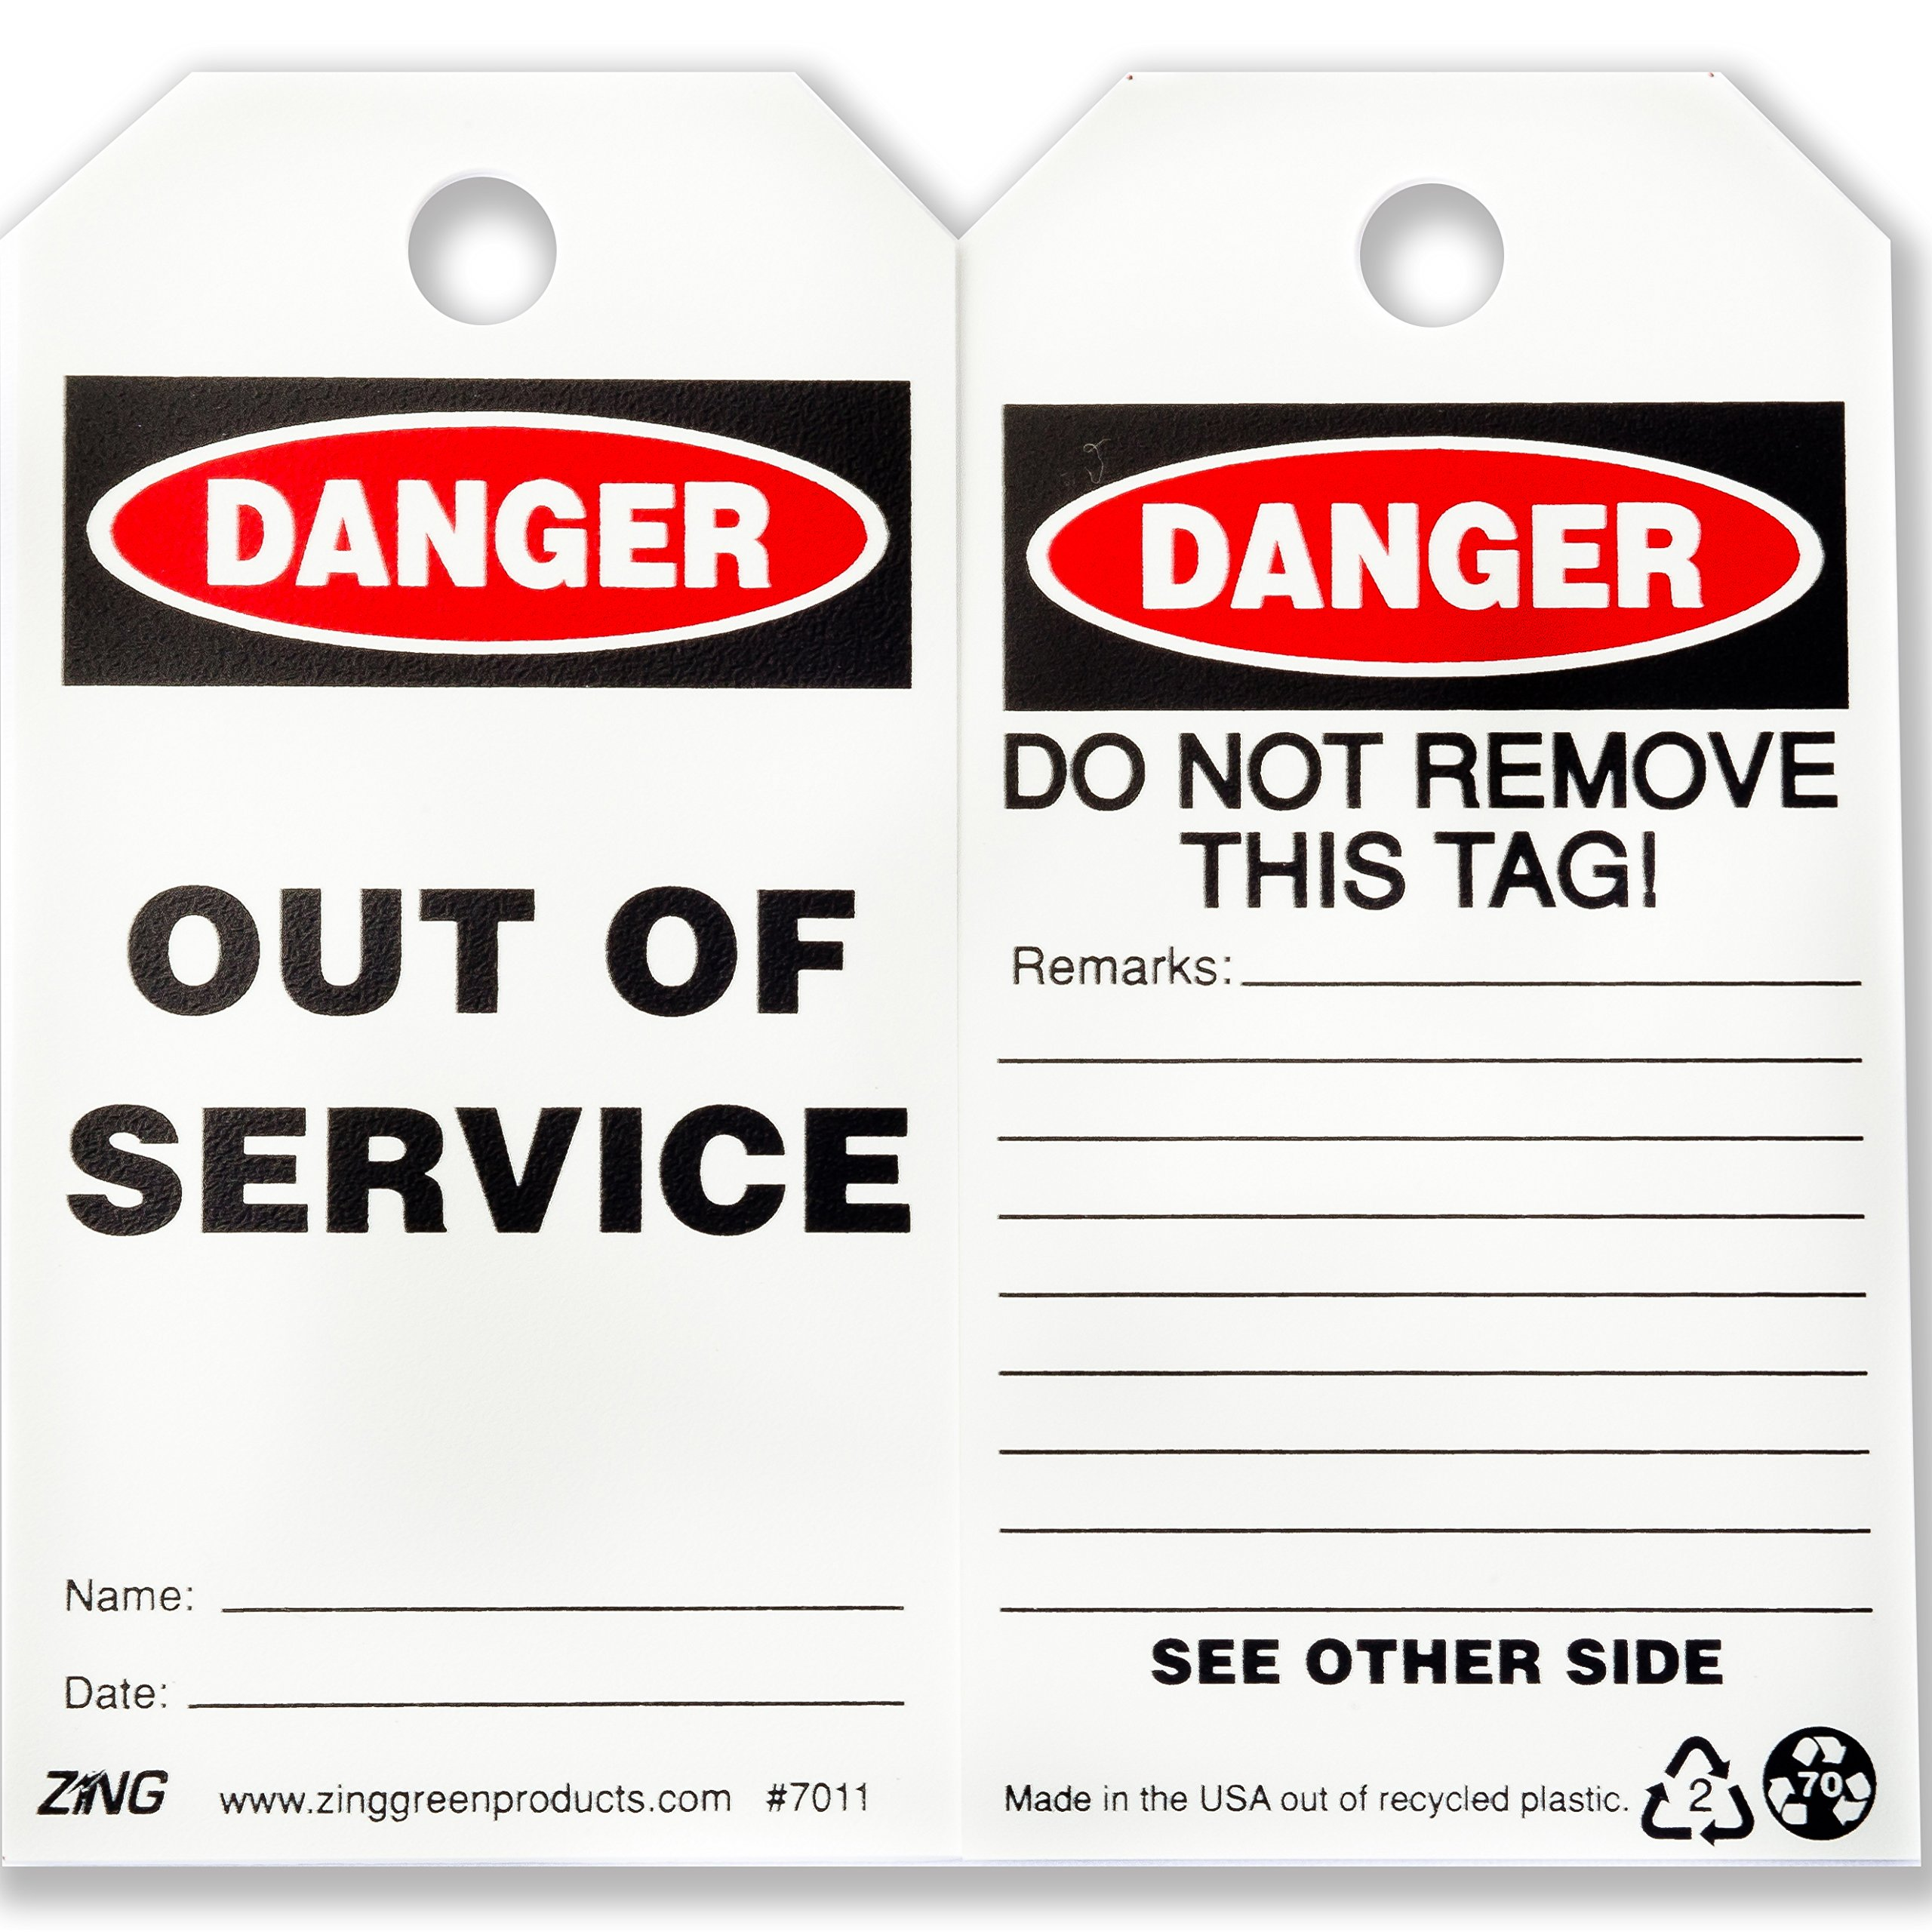 ZING 7011 Eco Safety Tag, DANGER Out of Service, 5.75Hx3W, 10 Pack